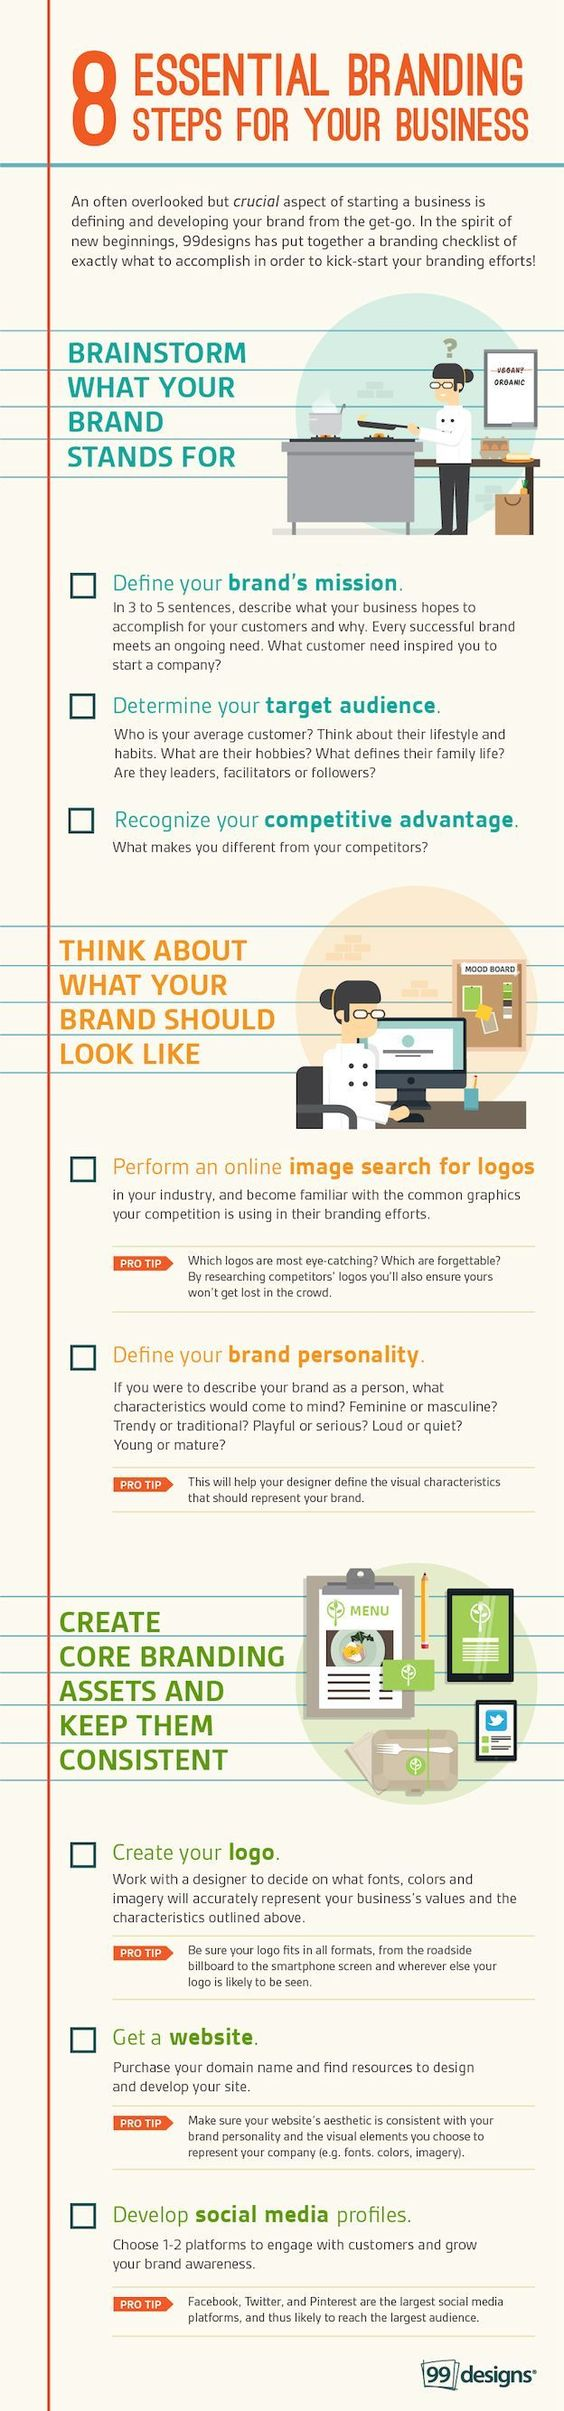 8 Essentials #Branding Steps for Your Business by 99designs